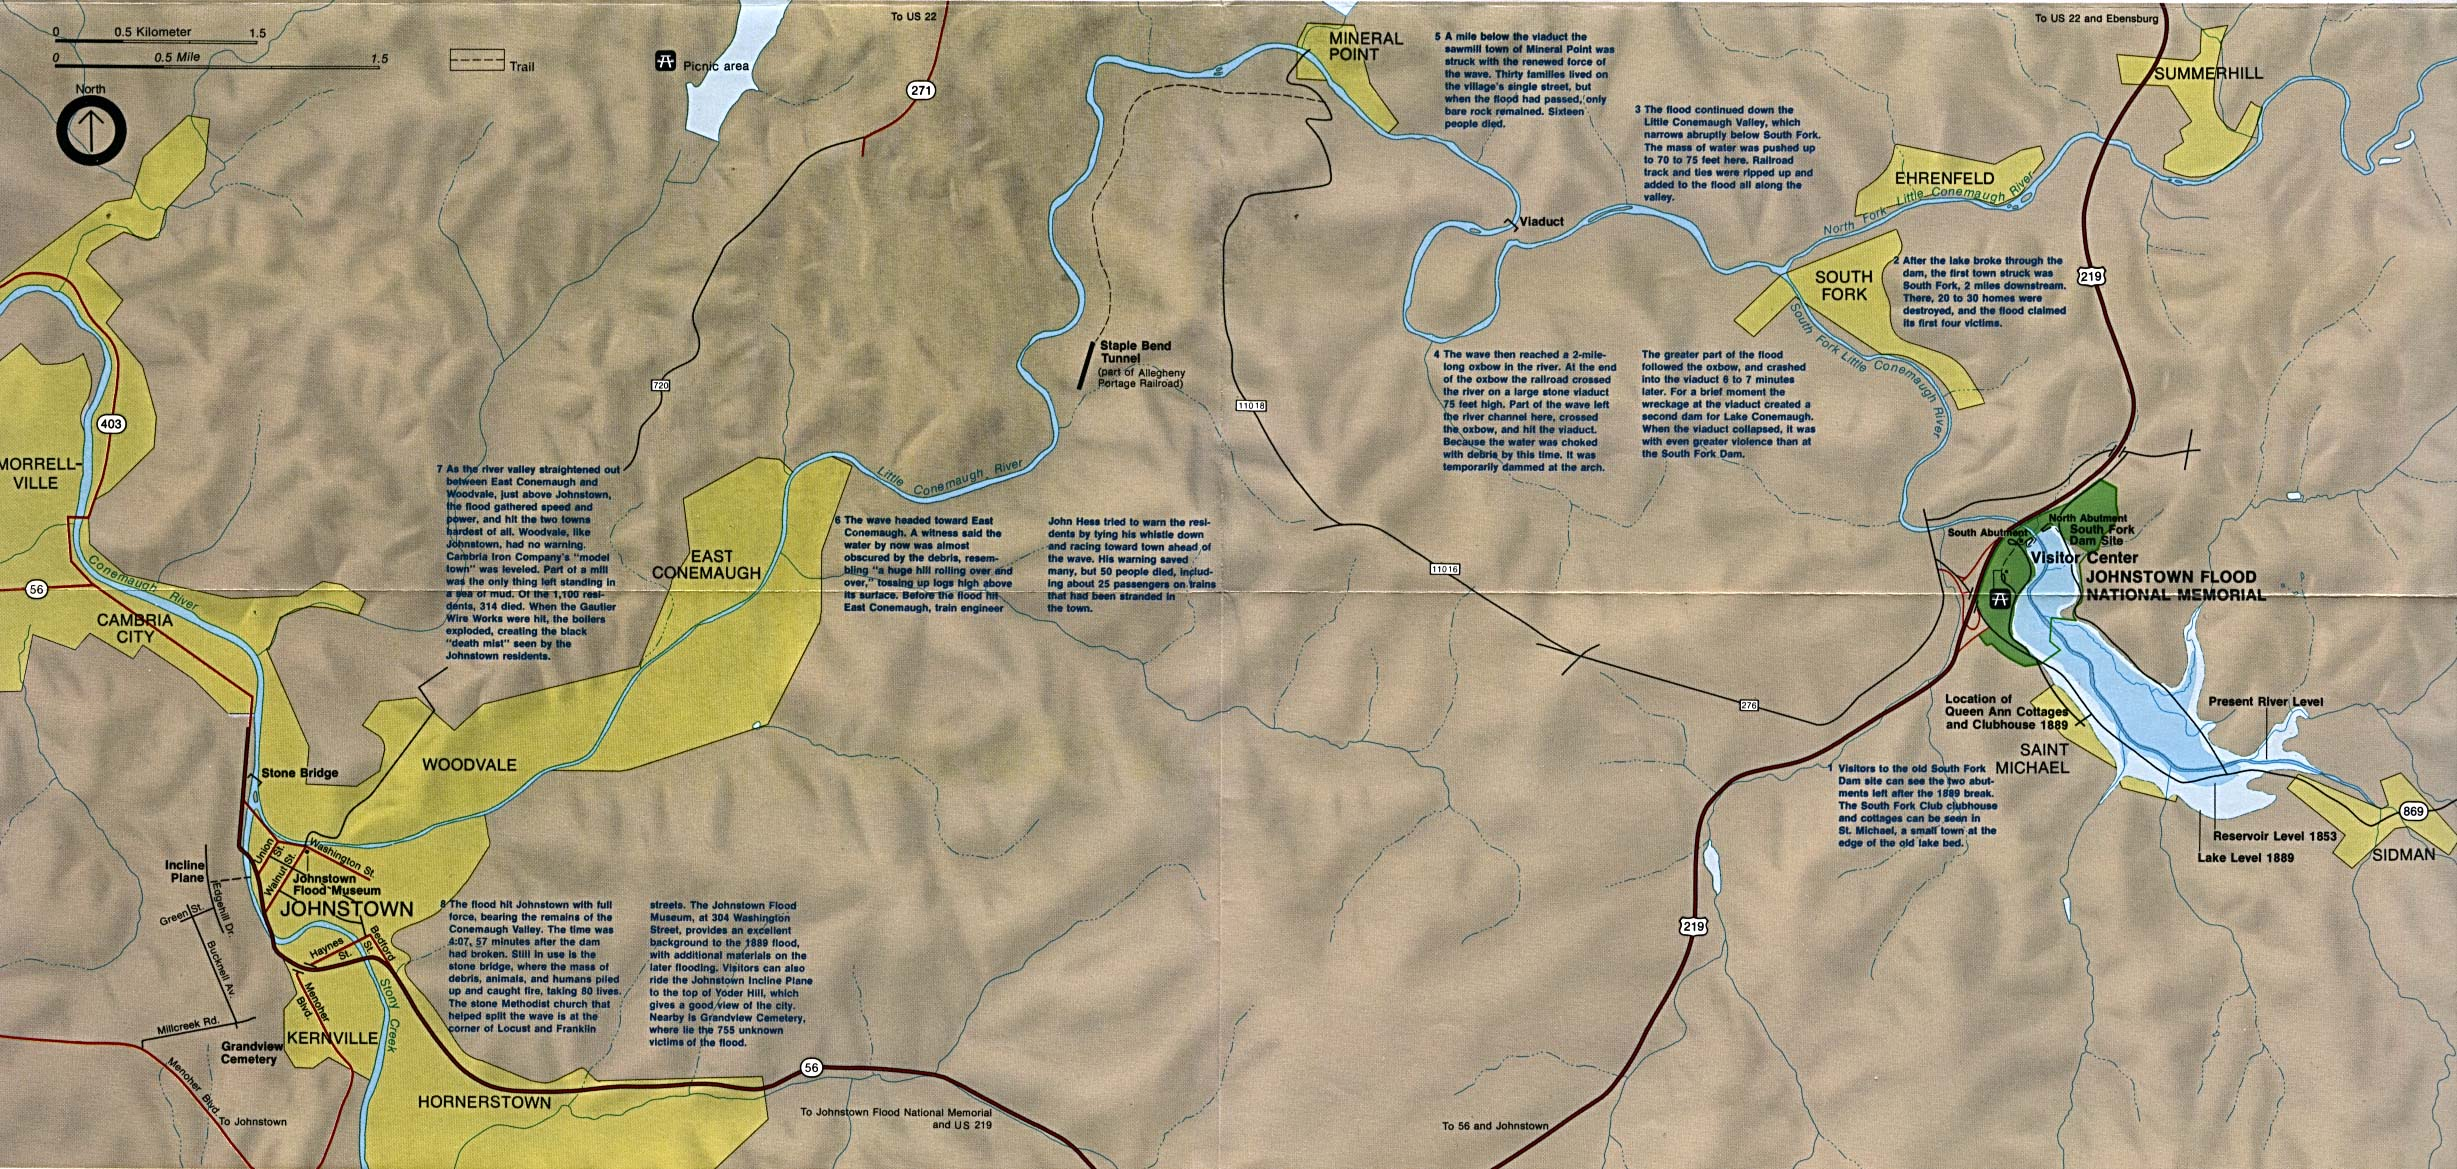 Mapa de Ubicación del Memorial Nacional Johnstown Flood, Pensilvania, Estados Unidos